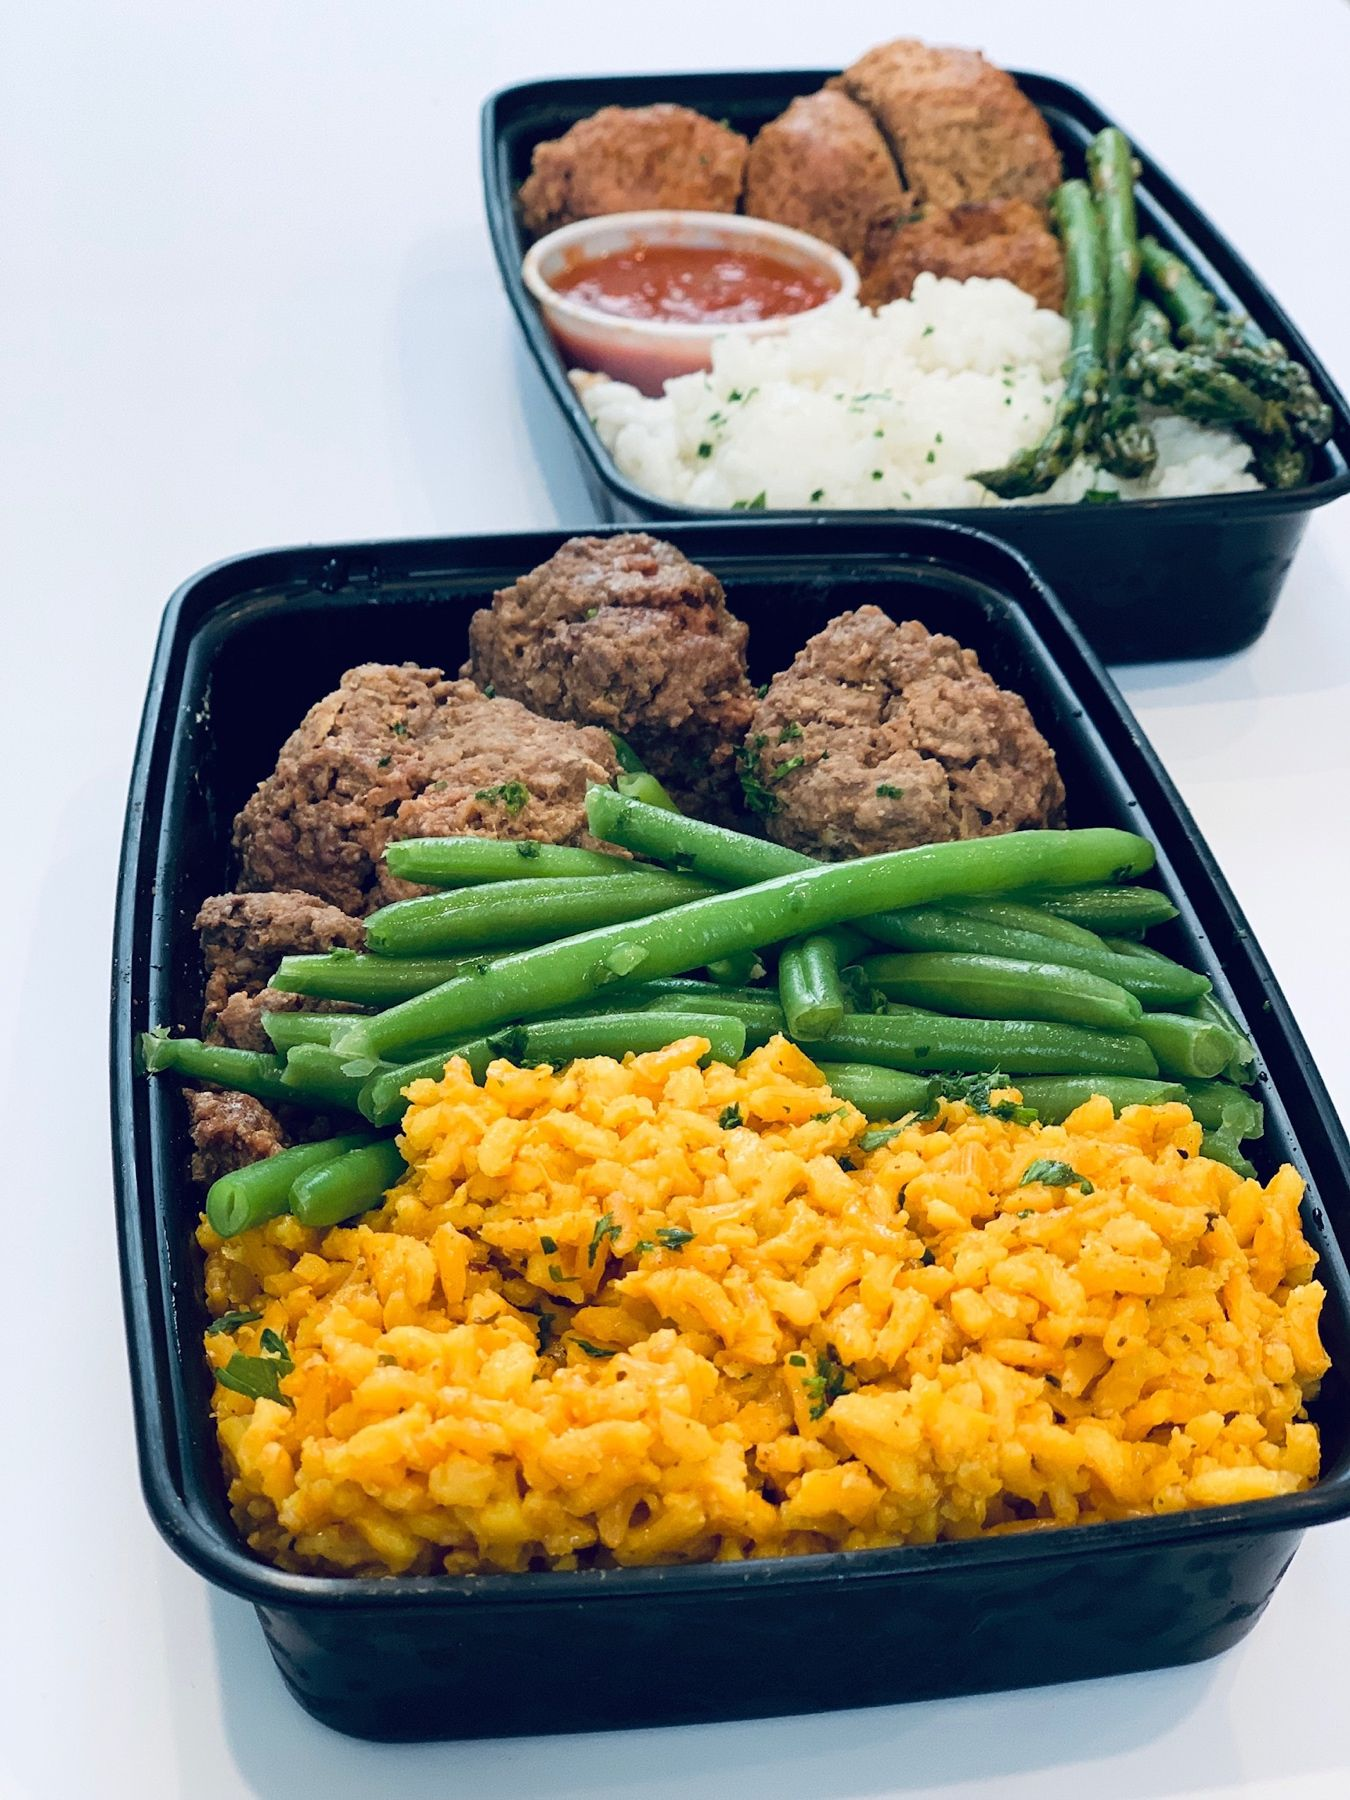 Pin By Superfit Foods On Food Prep Main Meals Ground Beef Meatballs Workout Food